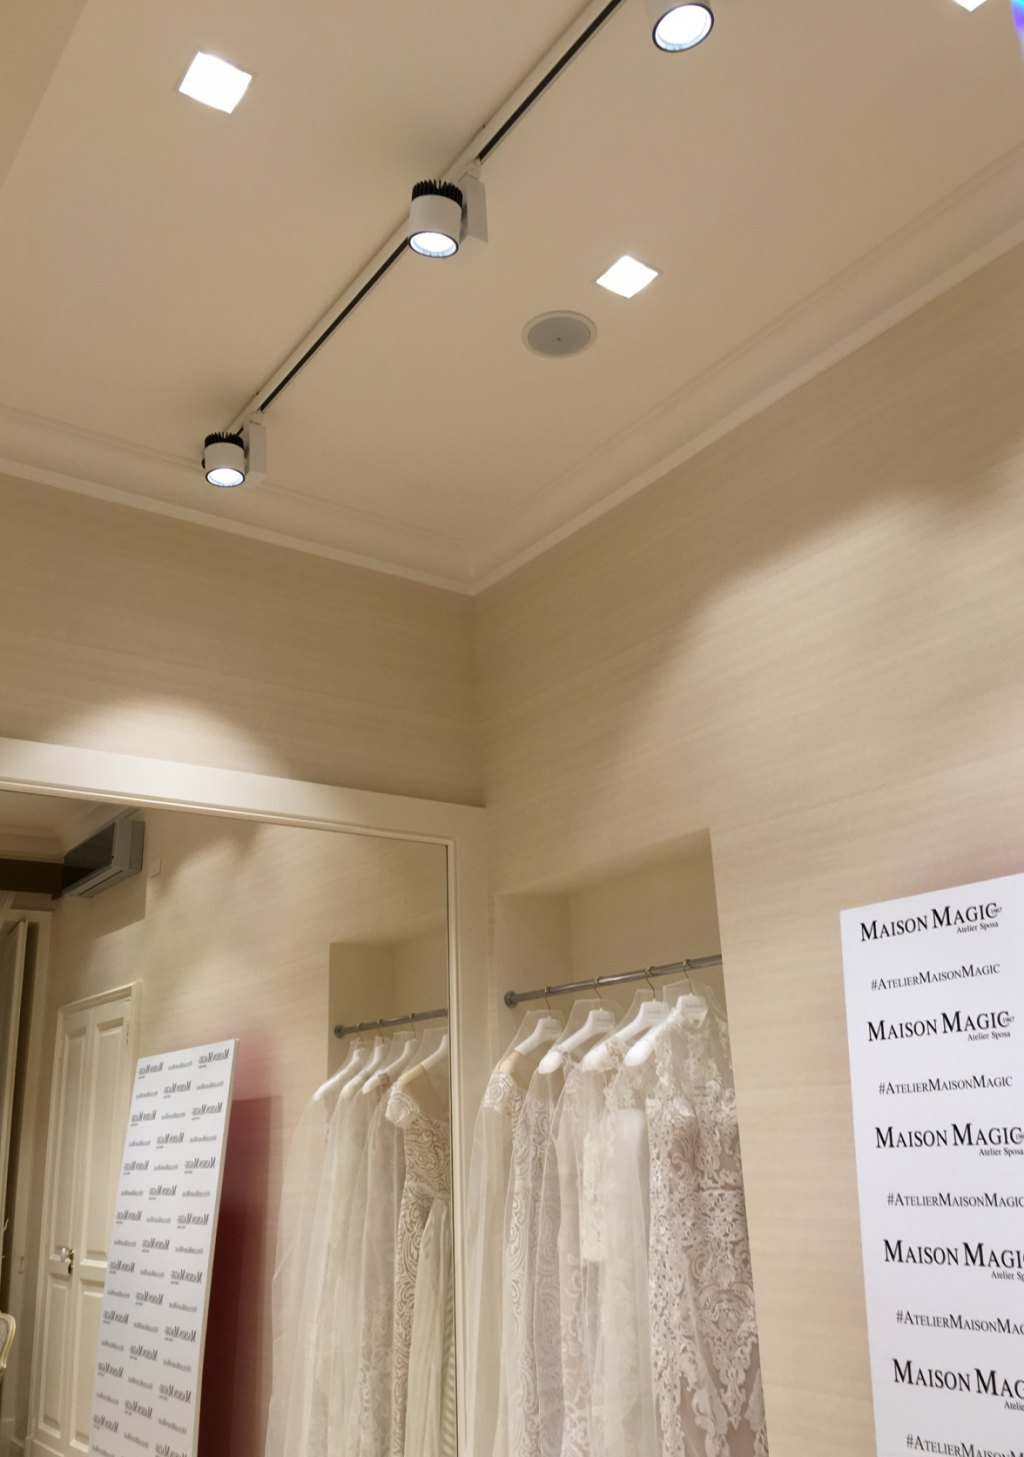 egoluce Maison Magic - Atelier sposa